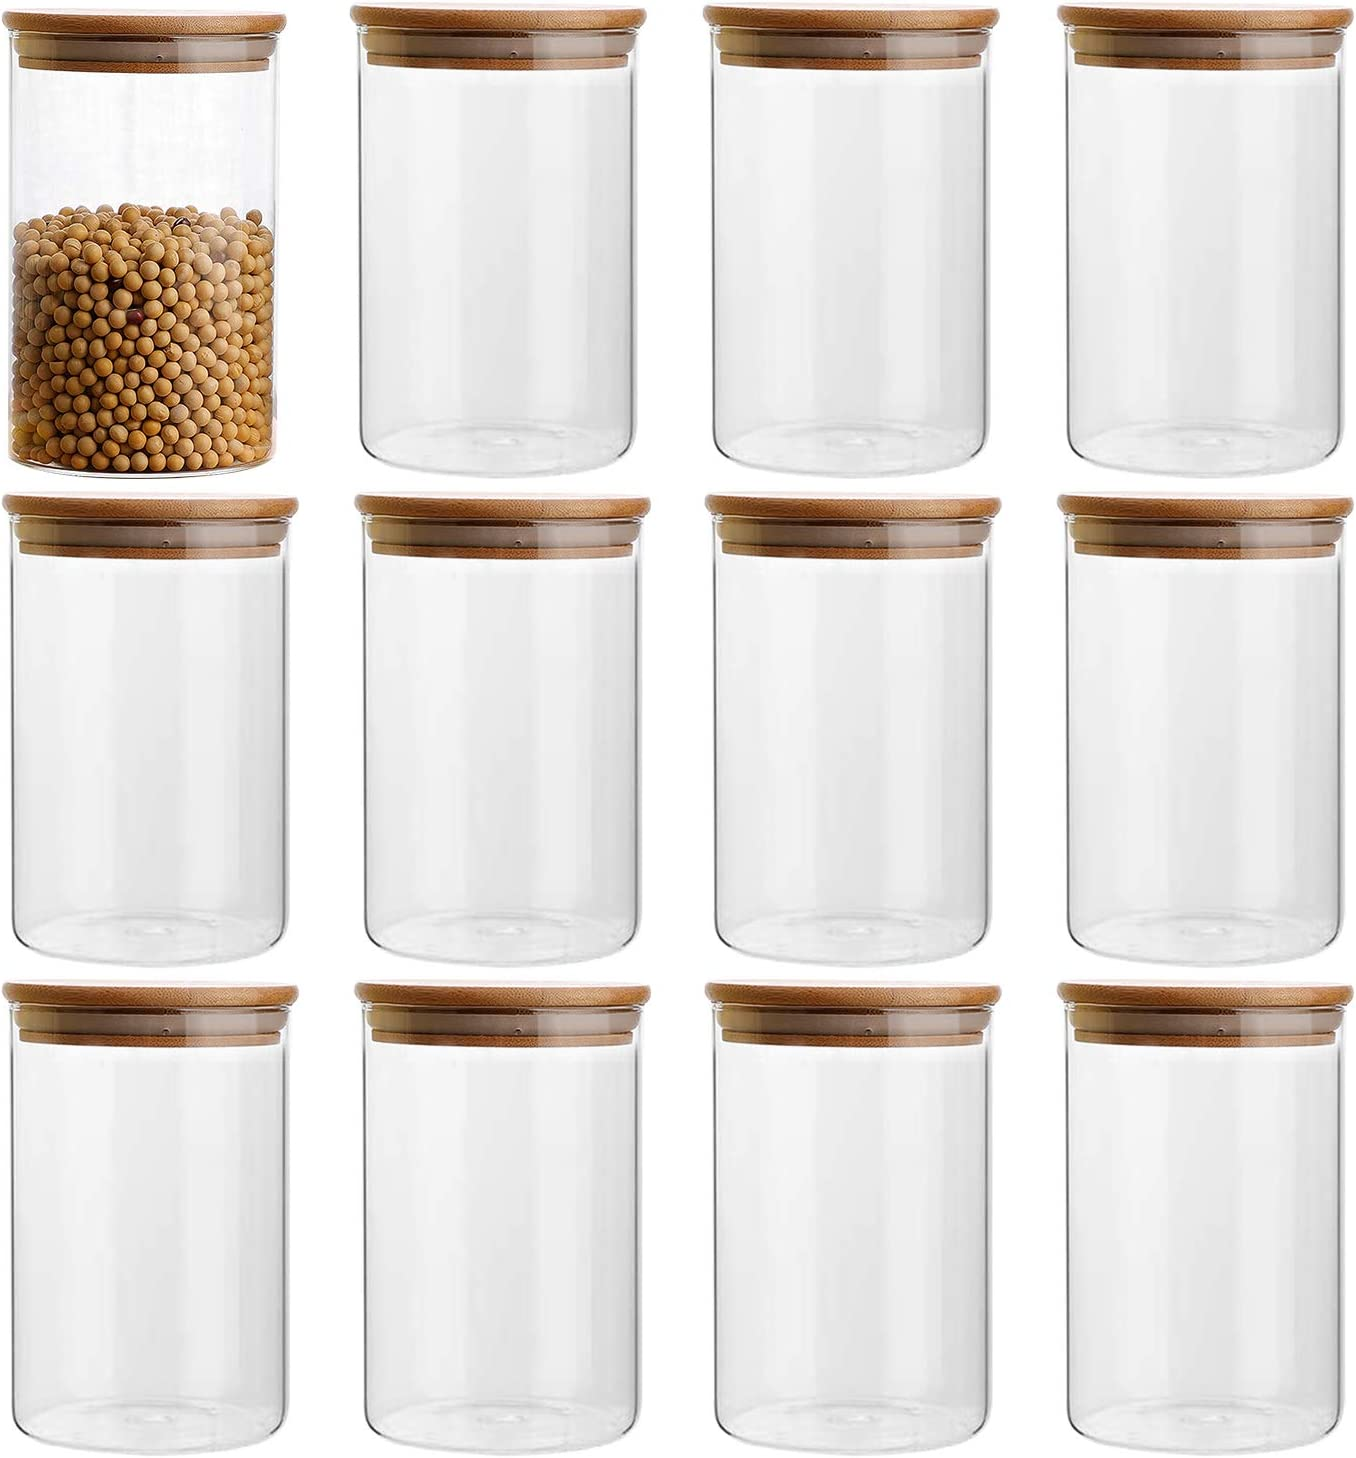 14oz/400ml Clear Glass Food Storage Containers Set Airtight Food Jars with Bamboo Wooden Lids Kitchen Canisters For Sugar, Candy, Cookie, Rice and Spice Jars - Set of 12